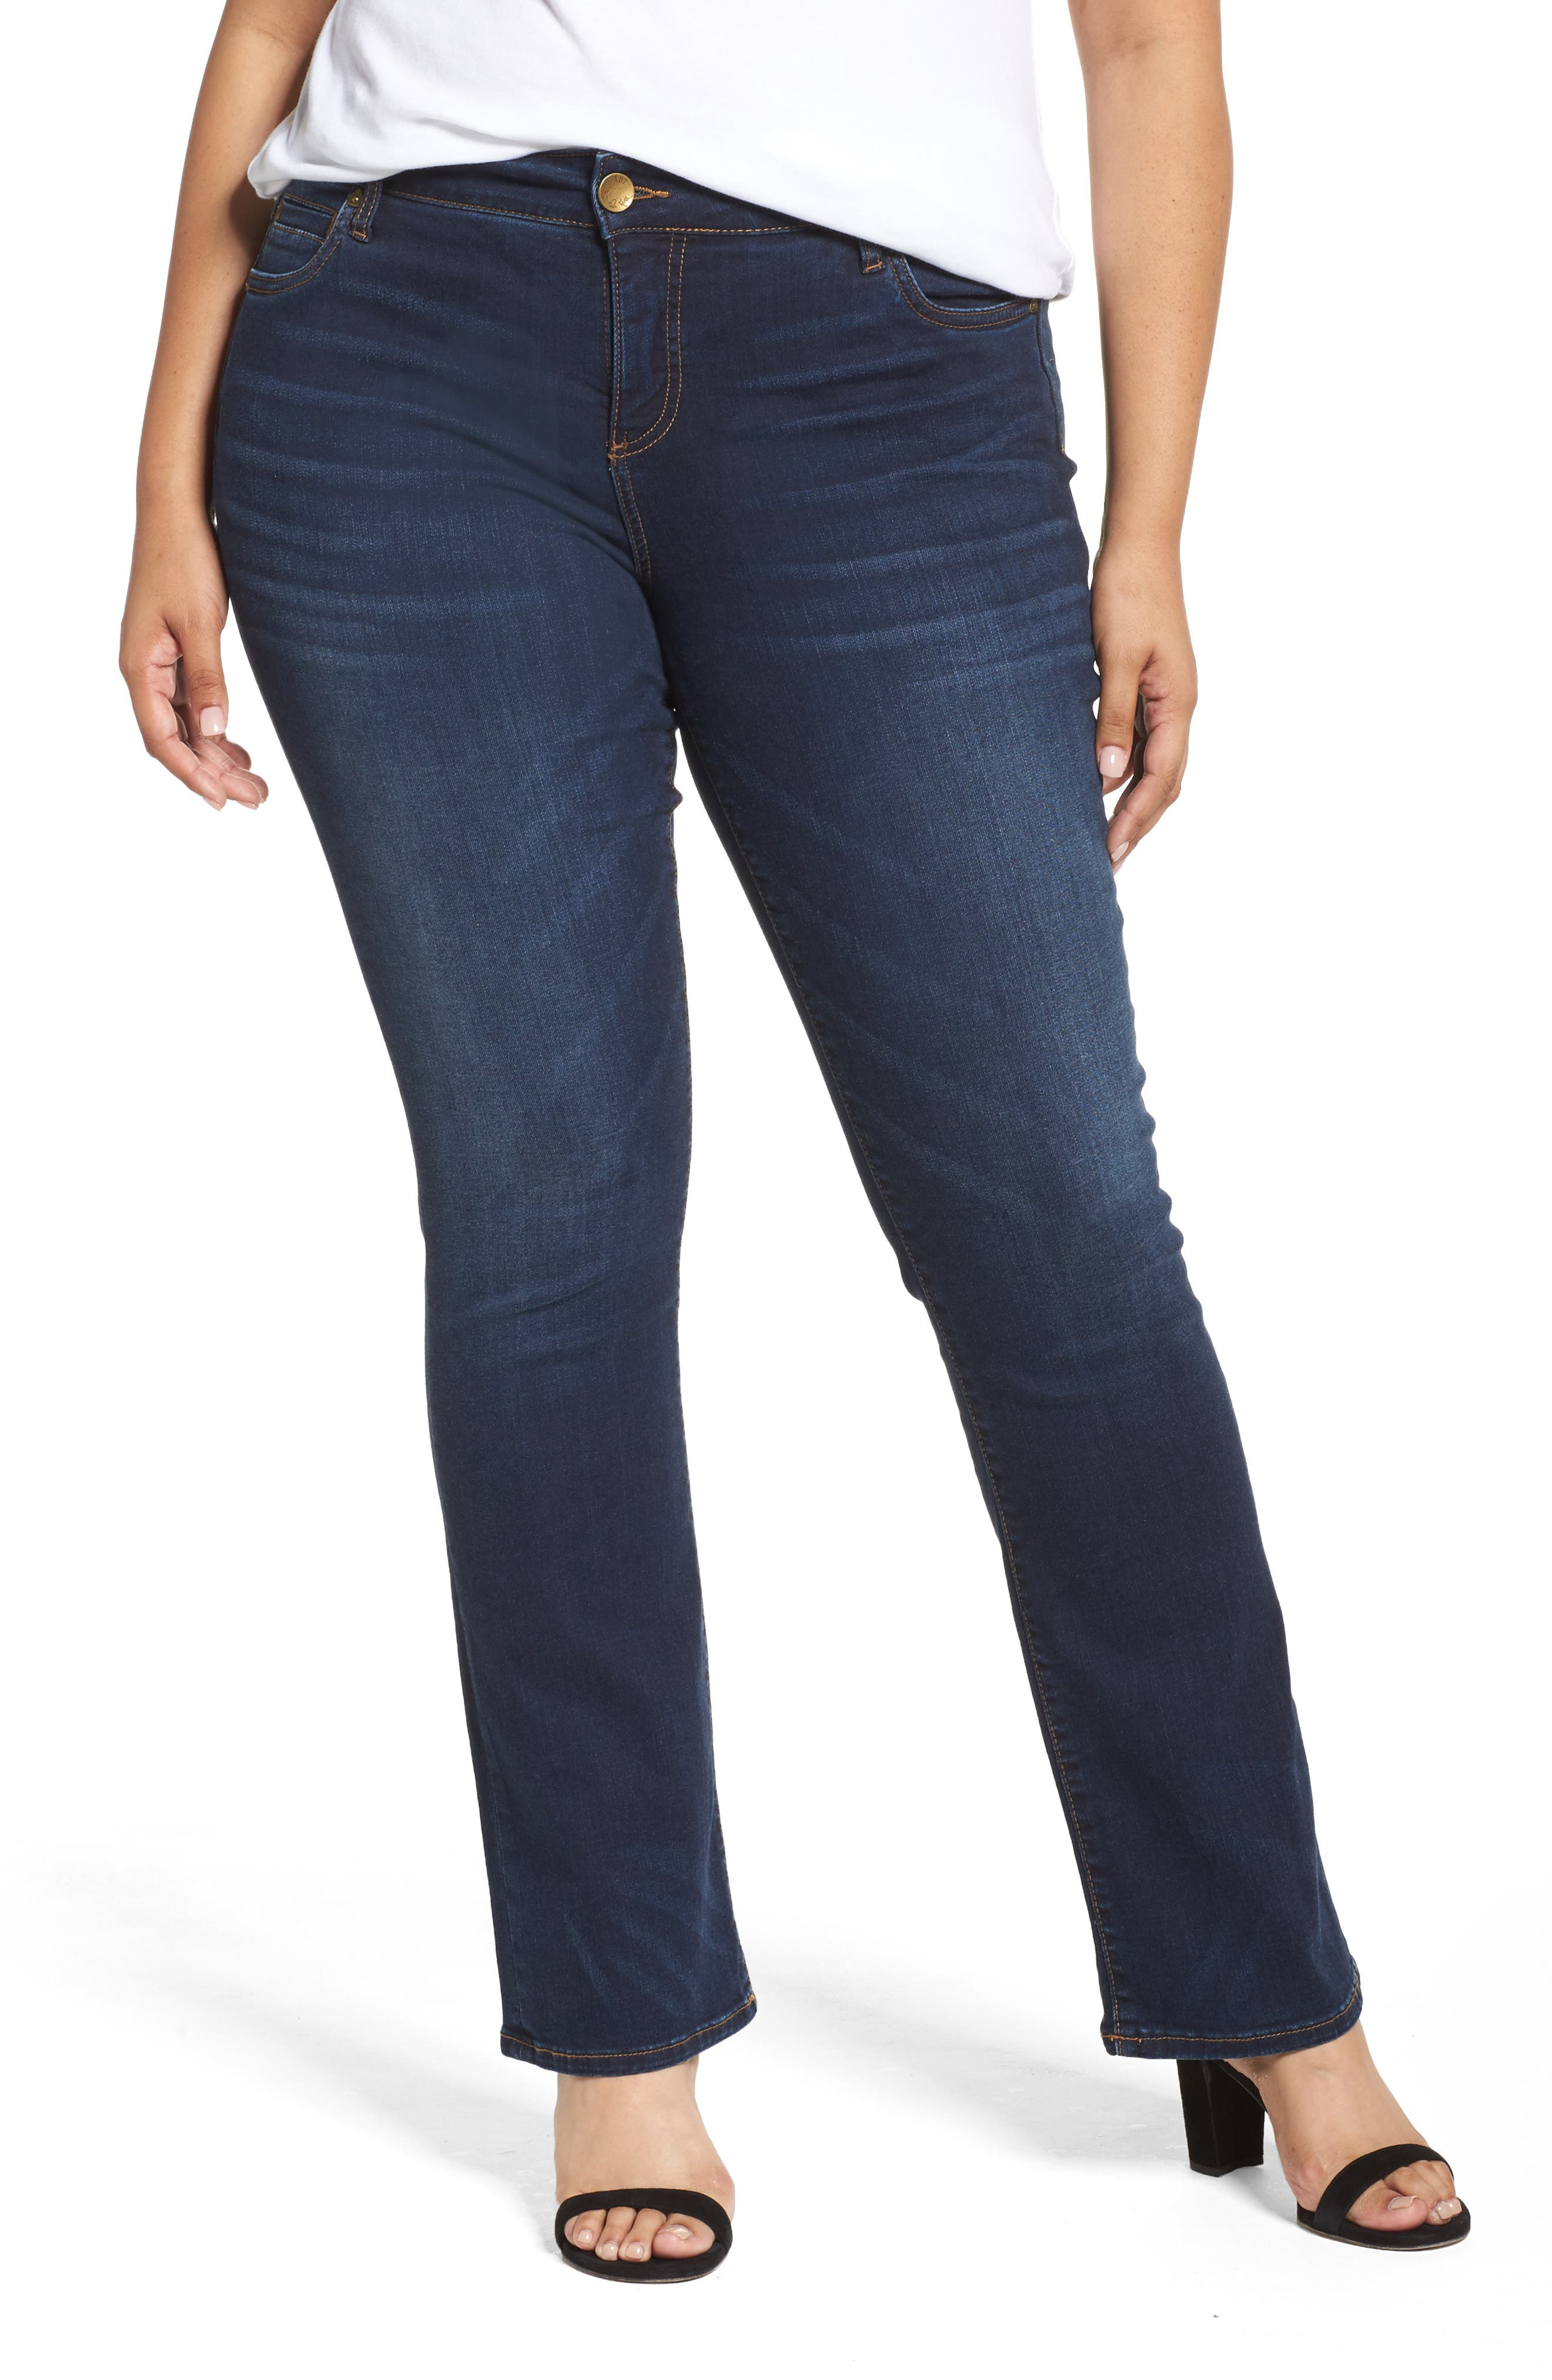 Main Image - KUT from the Kloth Natalie High Waist Bootcut Jeans (Closeness) (Plus Size)